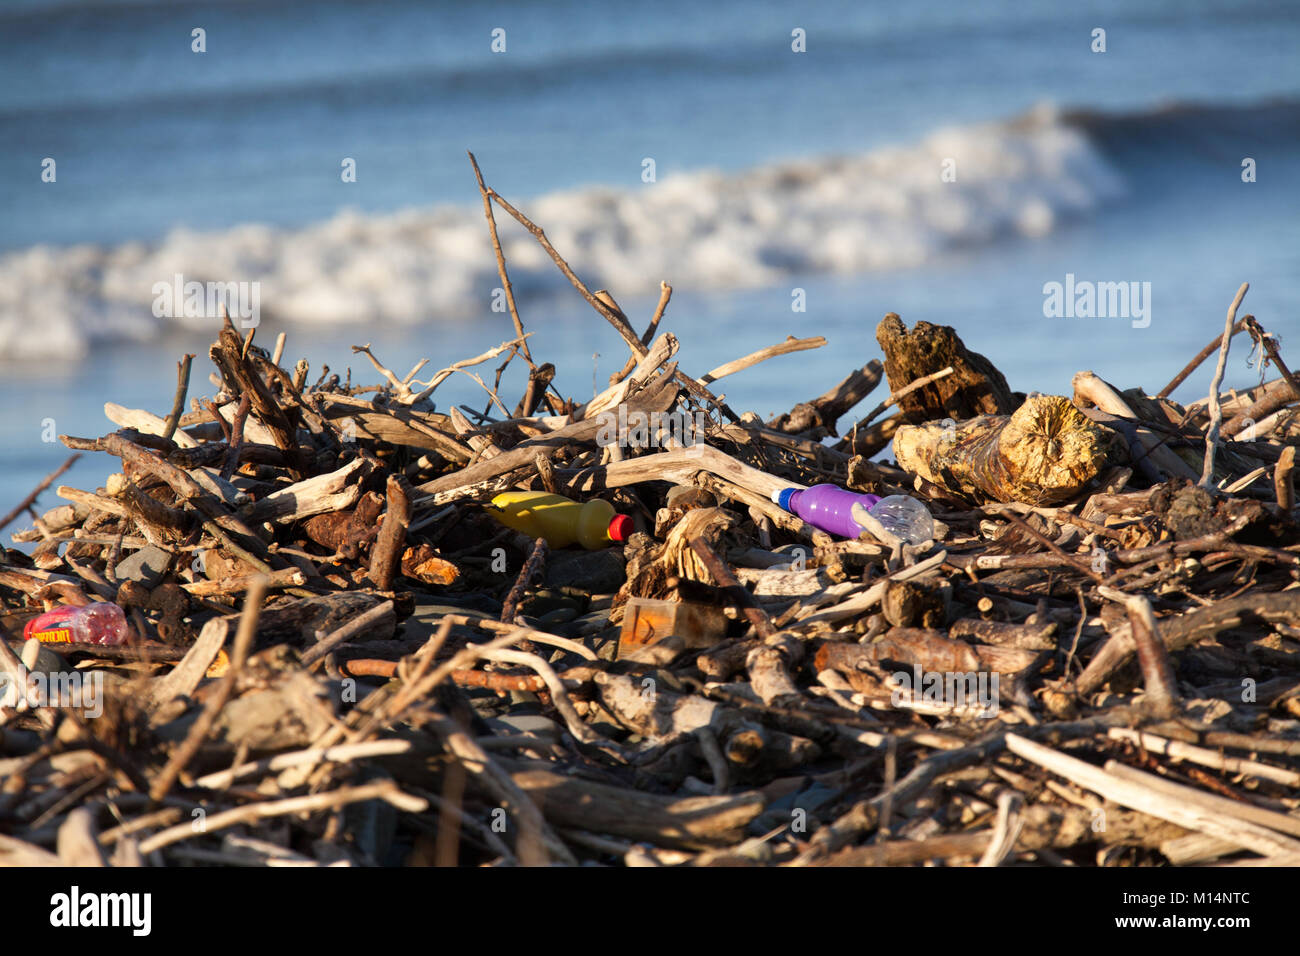 The Wales and Ceredigion Coast Path. Plastic debris washed ashore on a Wales and Ceredigion Coast Path beach. - Stock Image